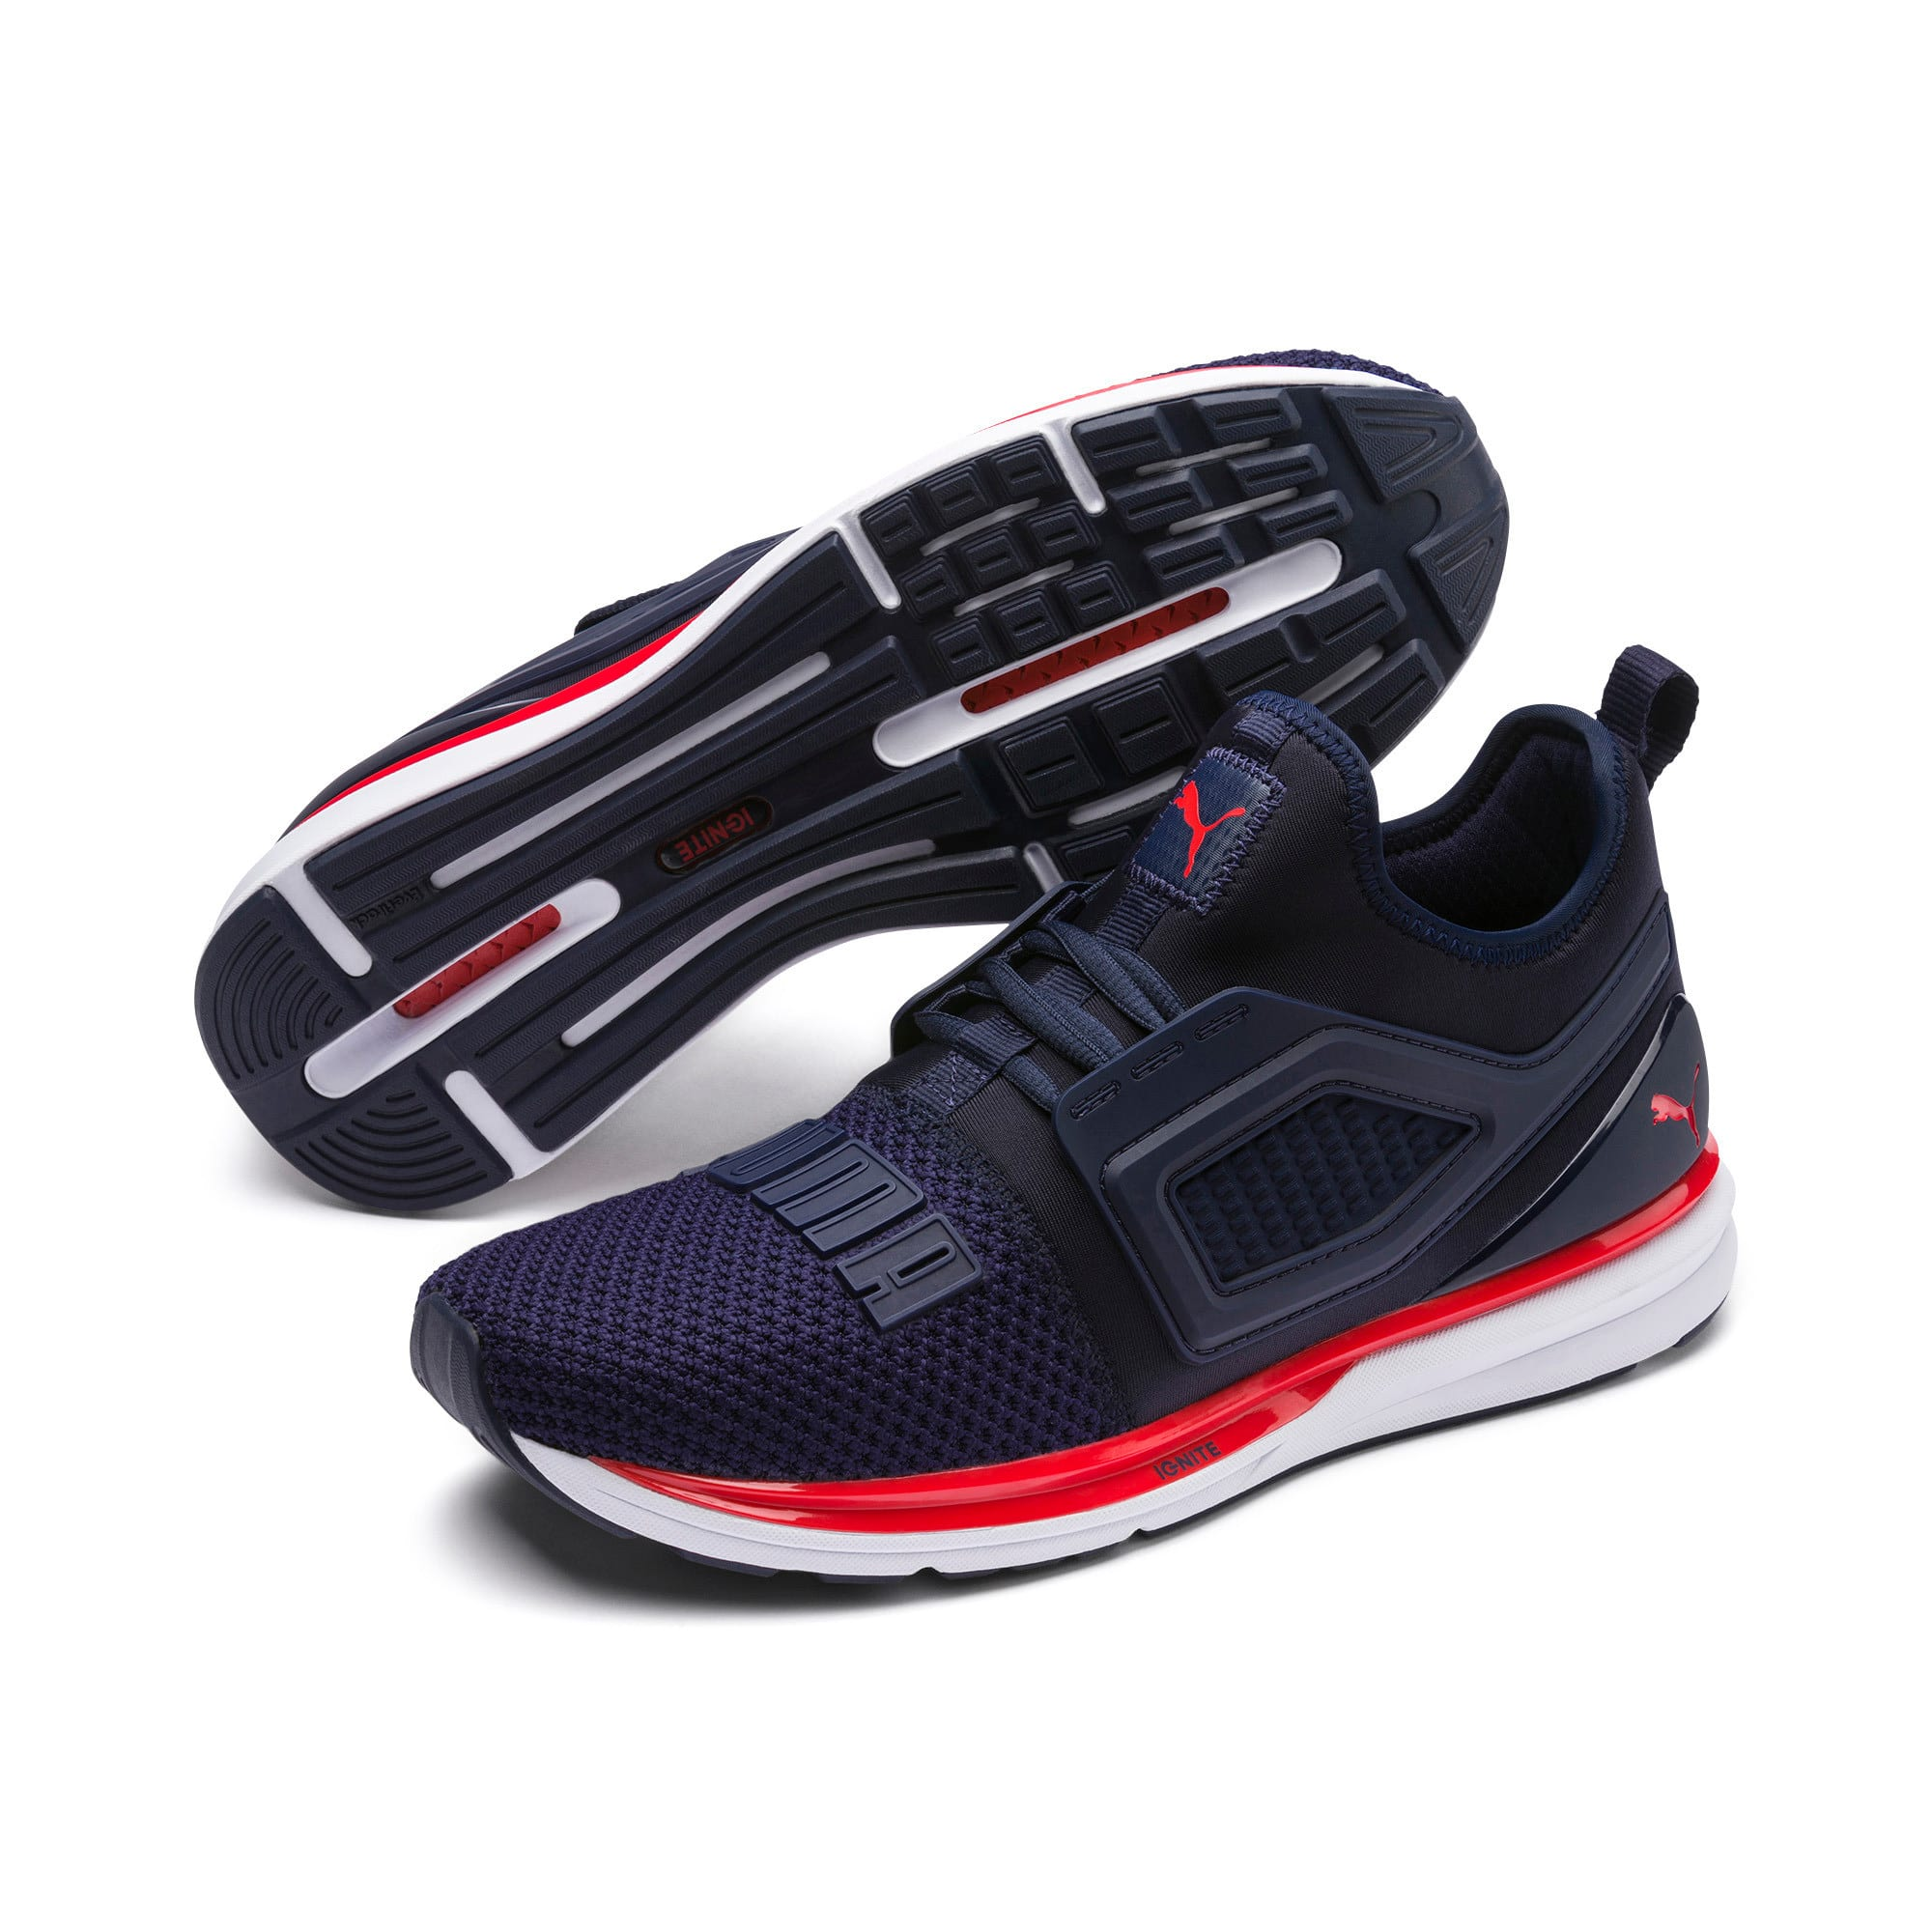 Thumbnail 2 of Chaussure de course IGNITE Limitless 2, Peacoat-High Risk Red, medium